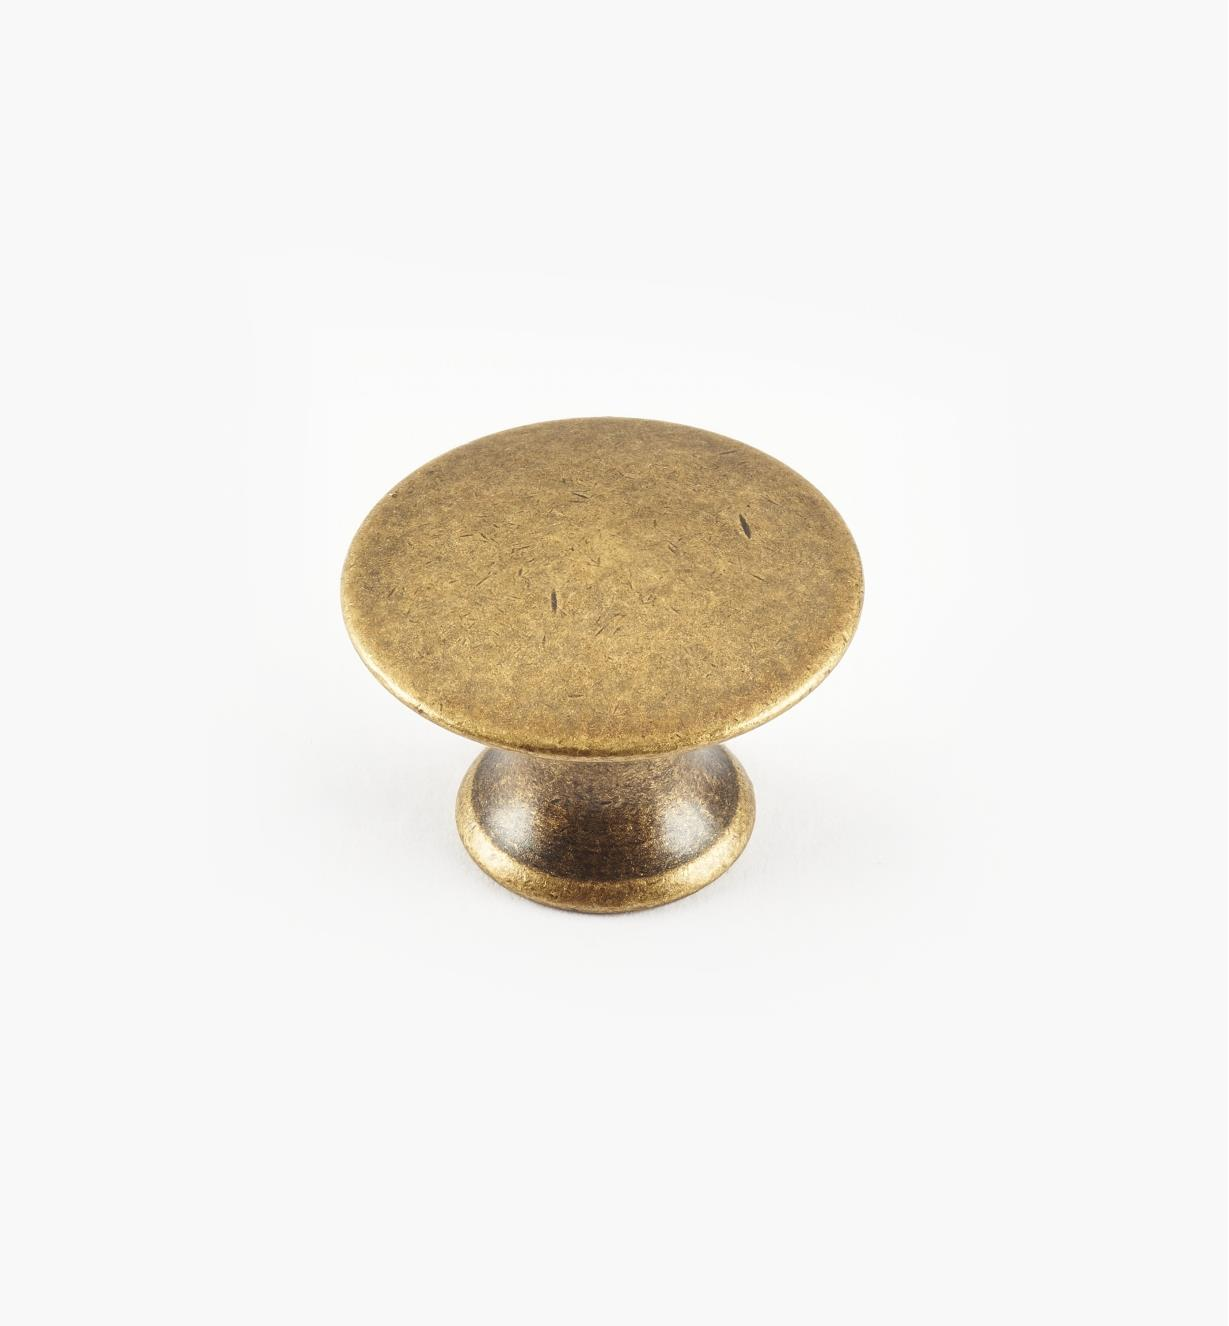 01A0222 - 22mm x 15mmAntique Brass Plain Knob